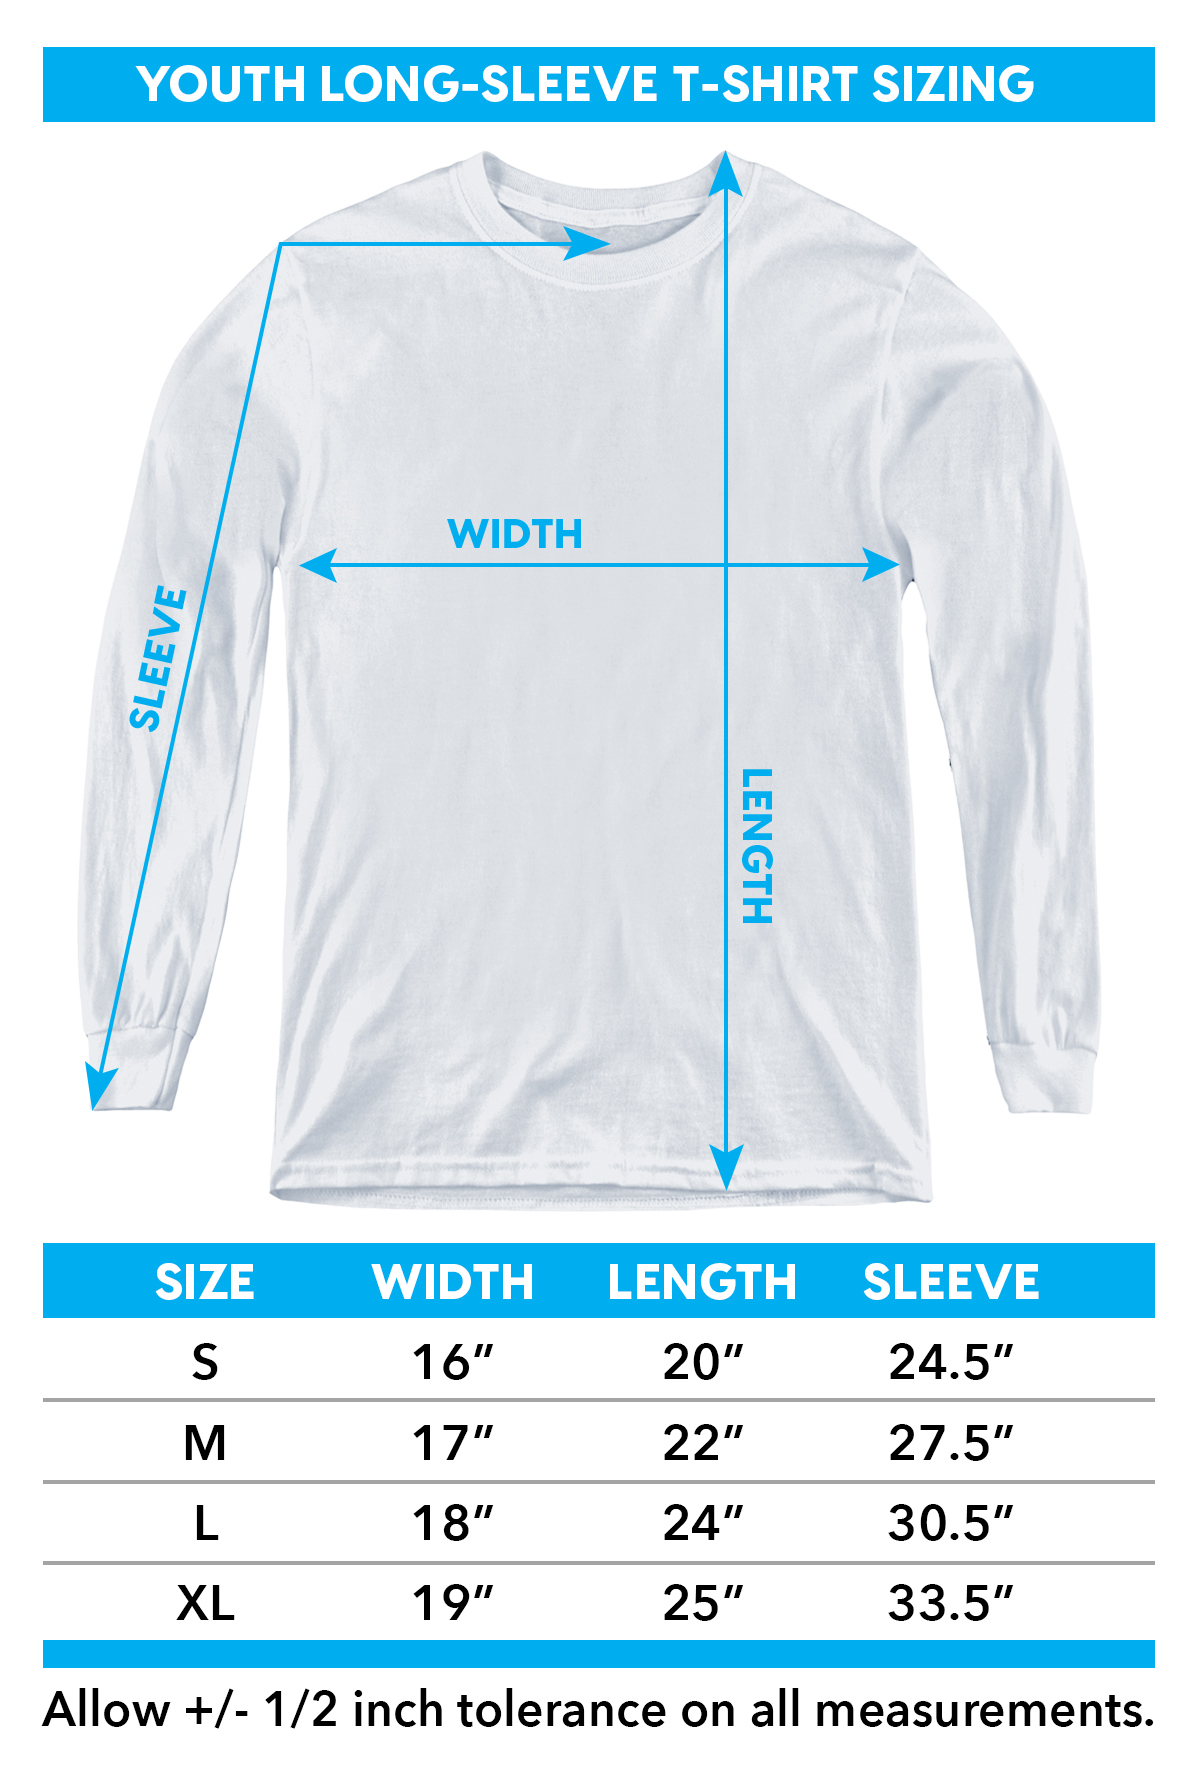 Sizing chart for Rocky Youth Long Sleeve T-Shirt - TRV-MGM243-YT